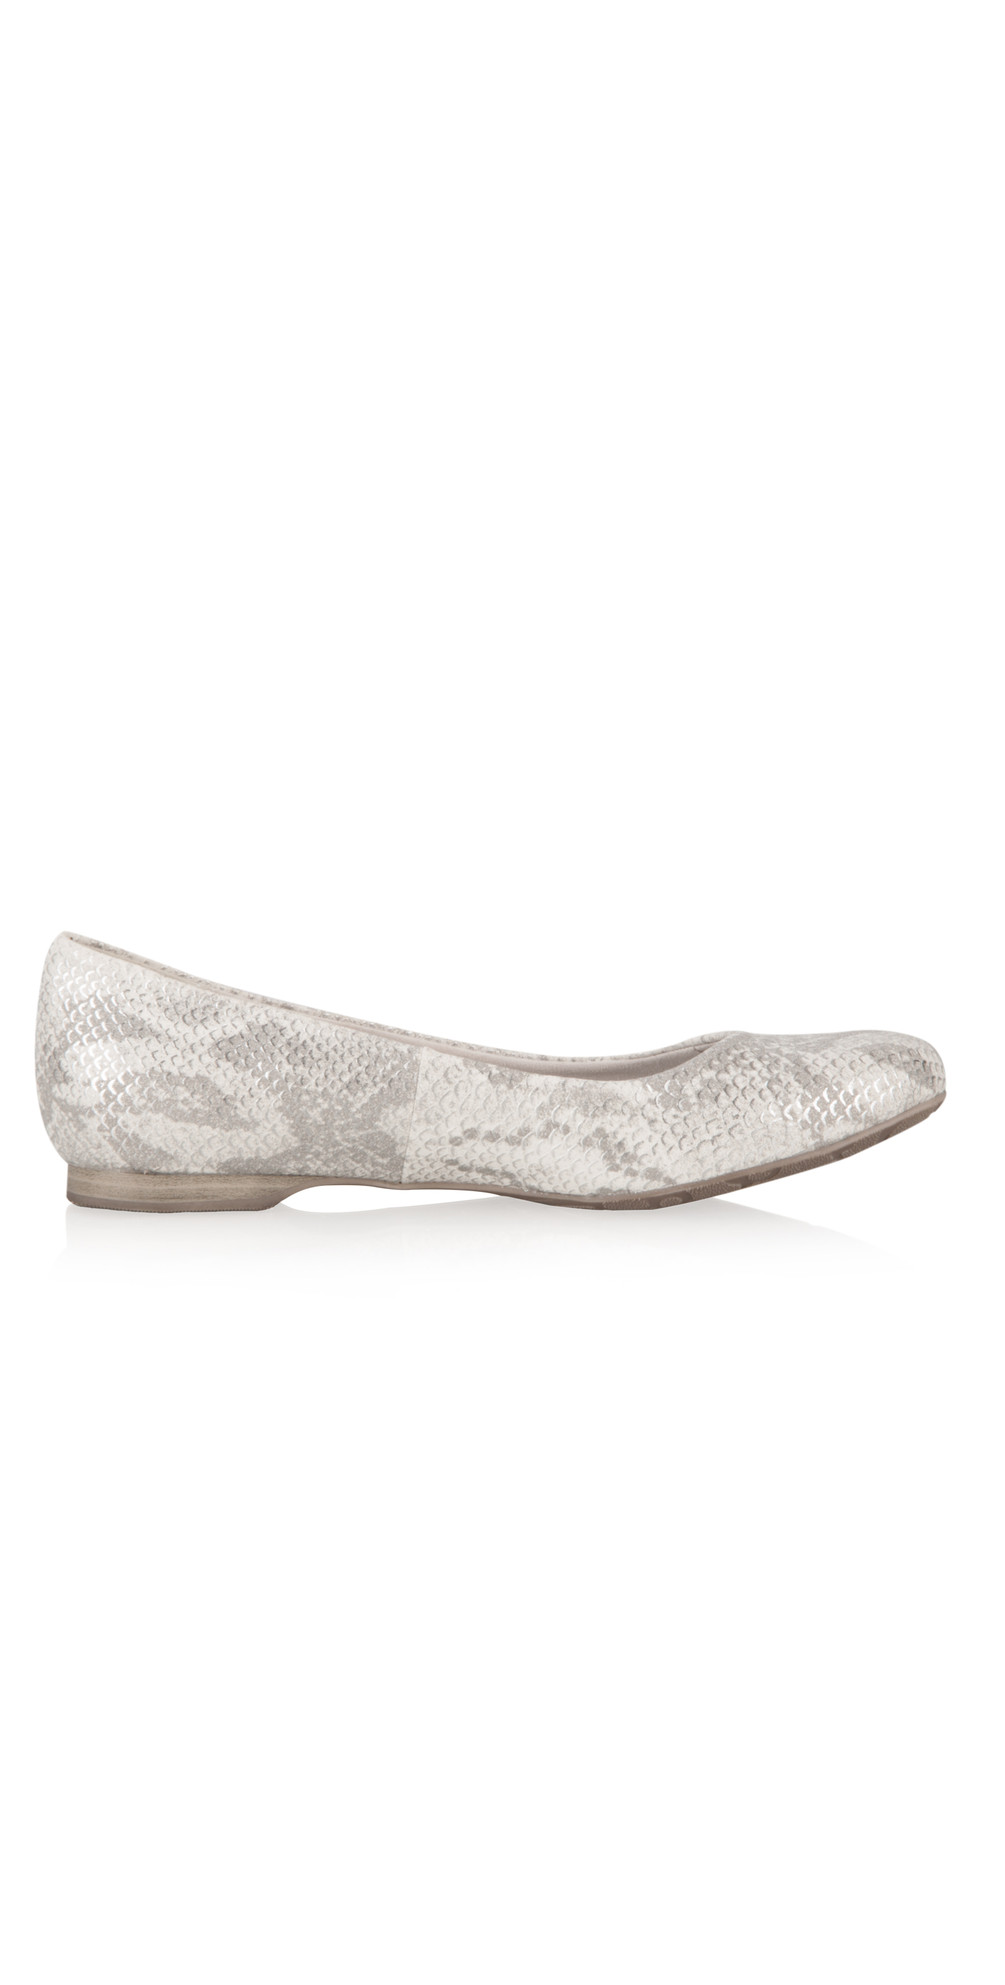 marco tozzi imit leather snakeskin ballet pump in off white. Black Bedroom Furniture Sets. Home Design Ideas